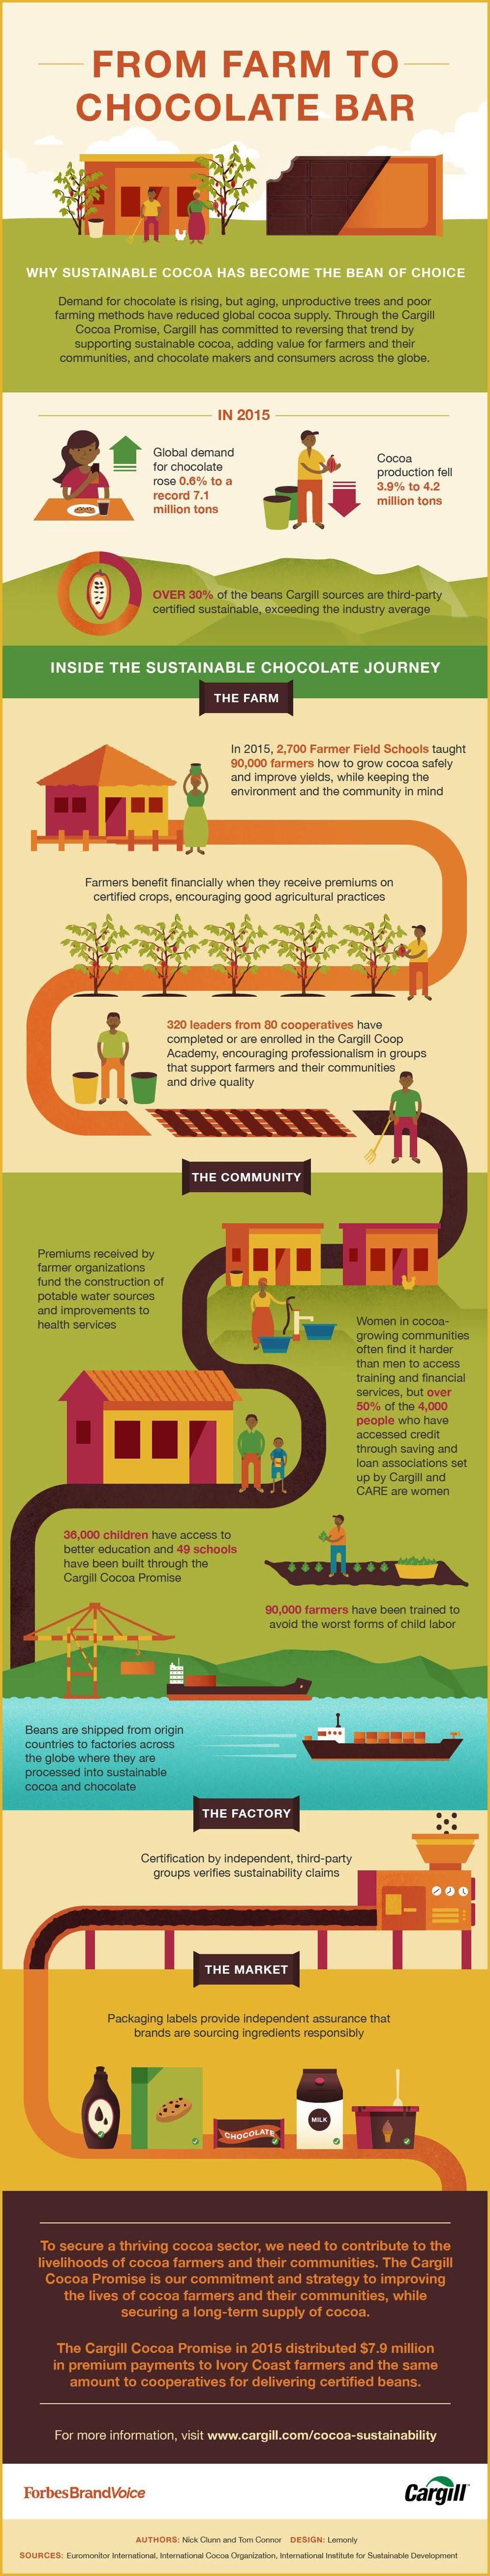 From Farm To Chocolate Bar #infographic